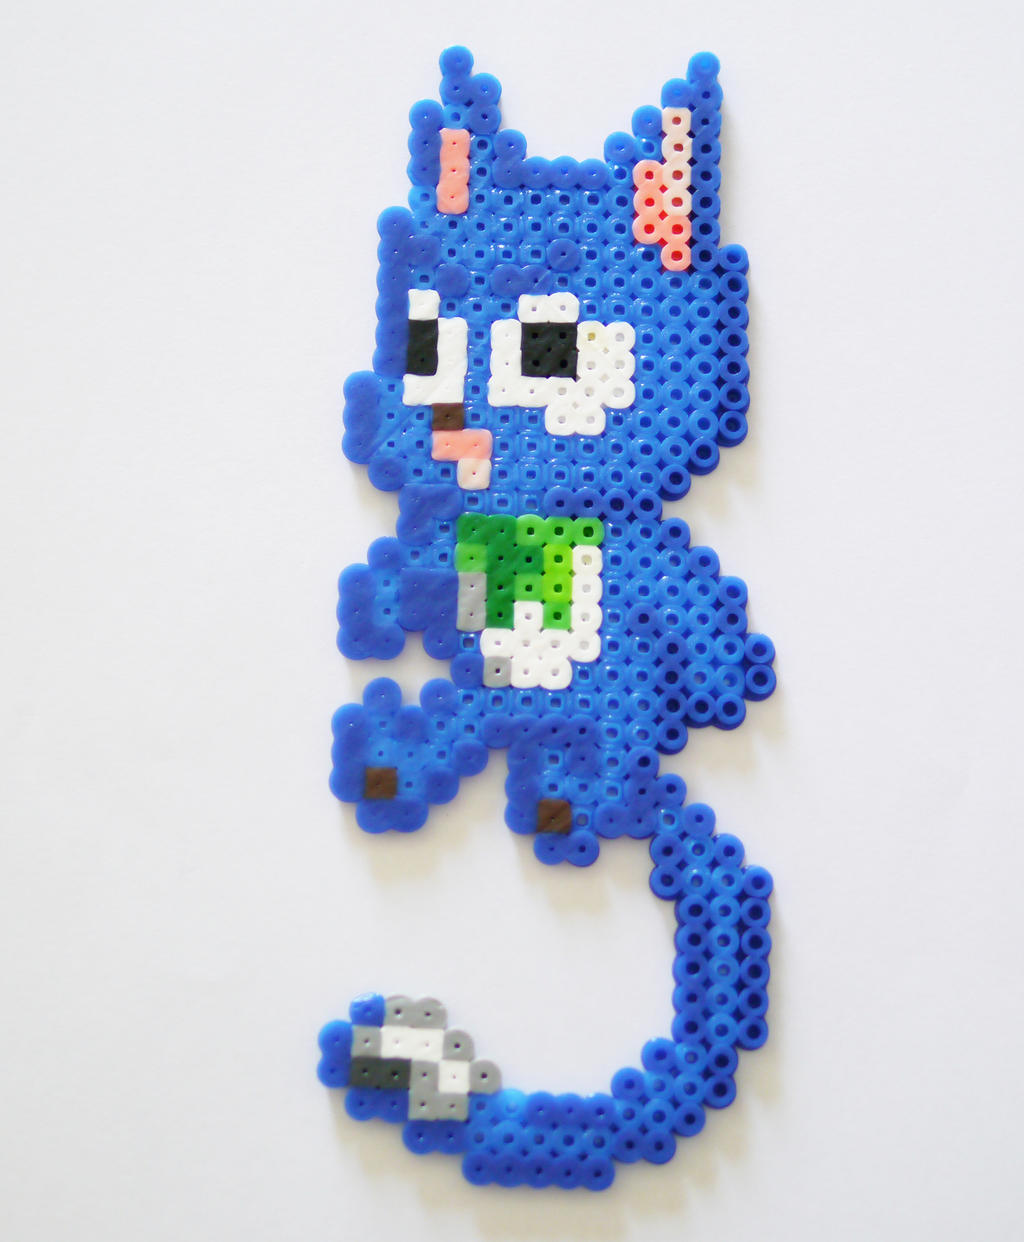 Happy (Fairy Tail) Made from Perler / Hama Beads by yolei-s